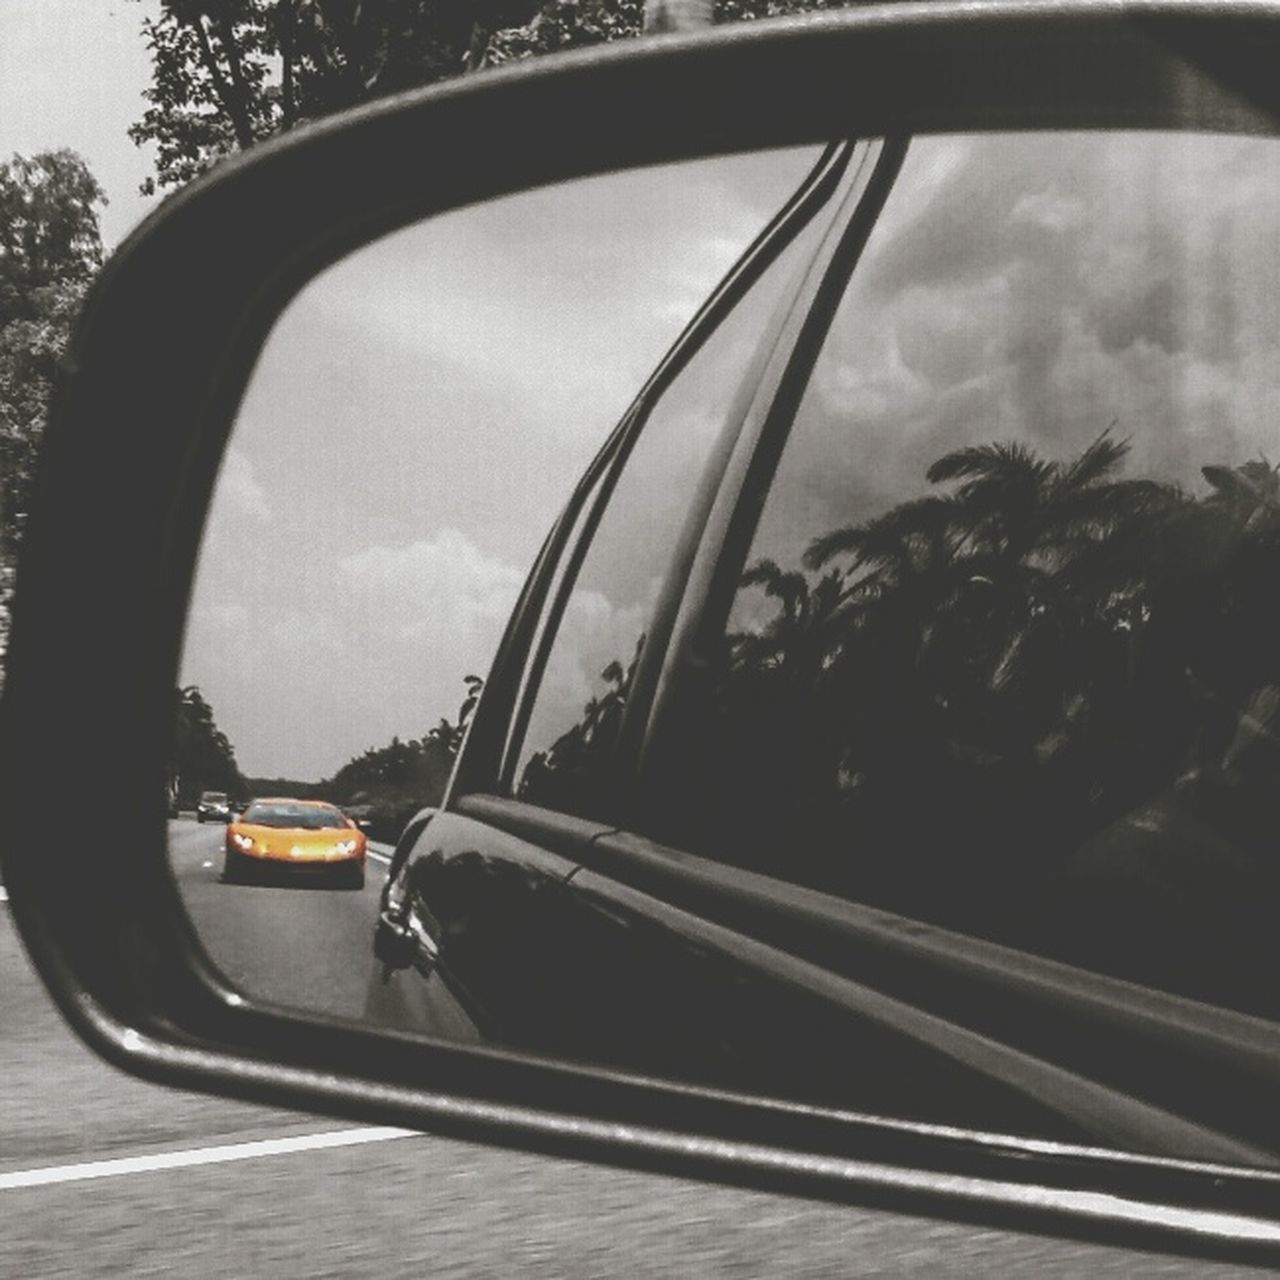 Took this Lamborghini shot through rearview mirror. Orange Lamborghini Rearviewmirrorshot ThrowBackSaturday